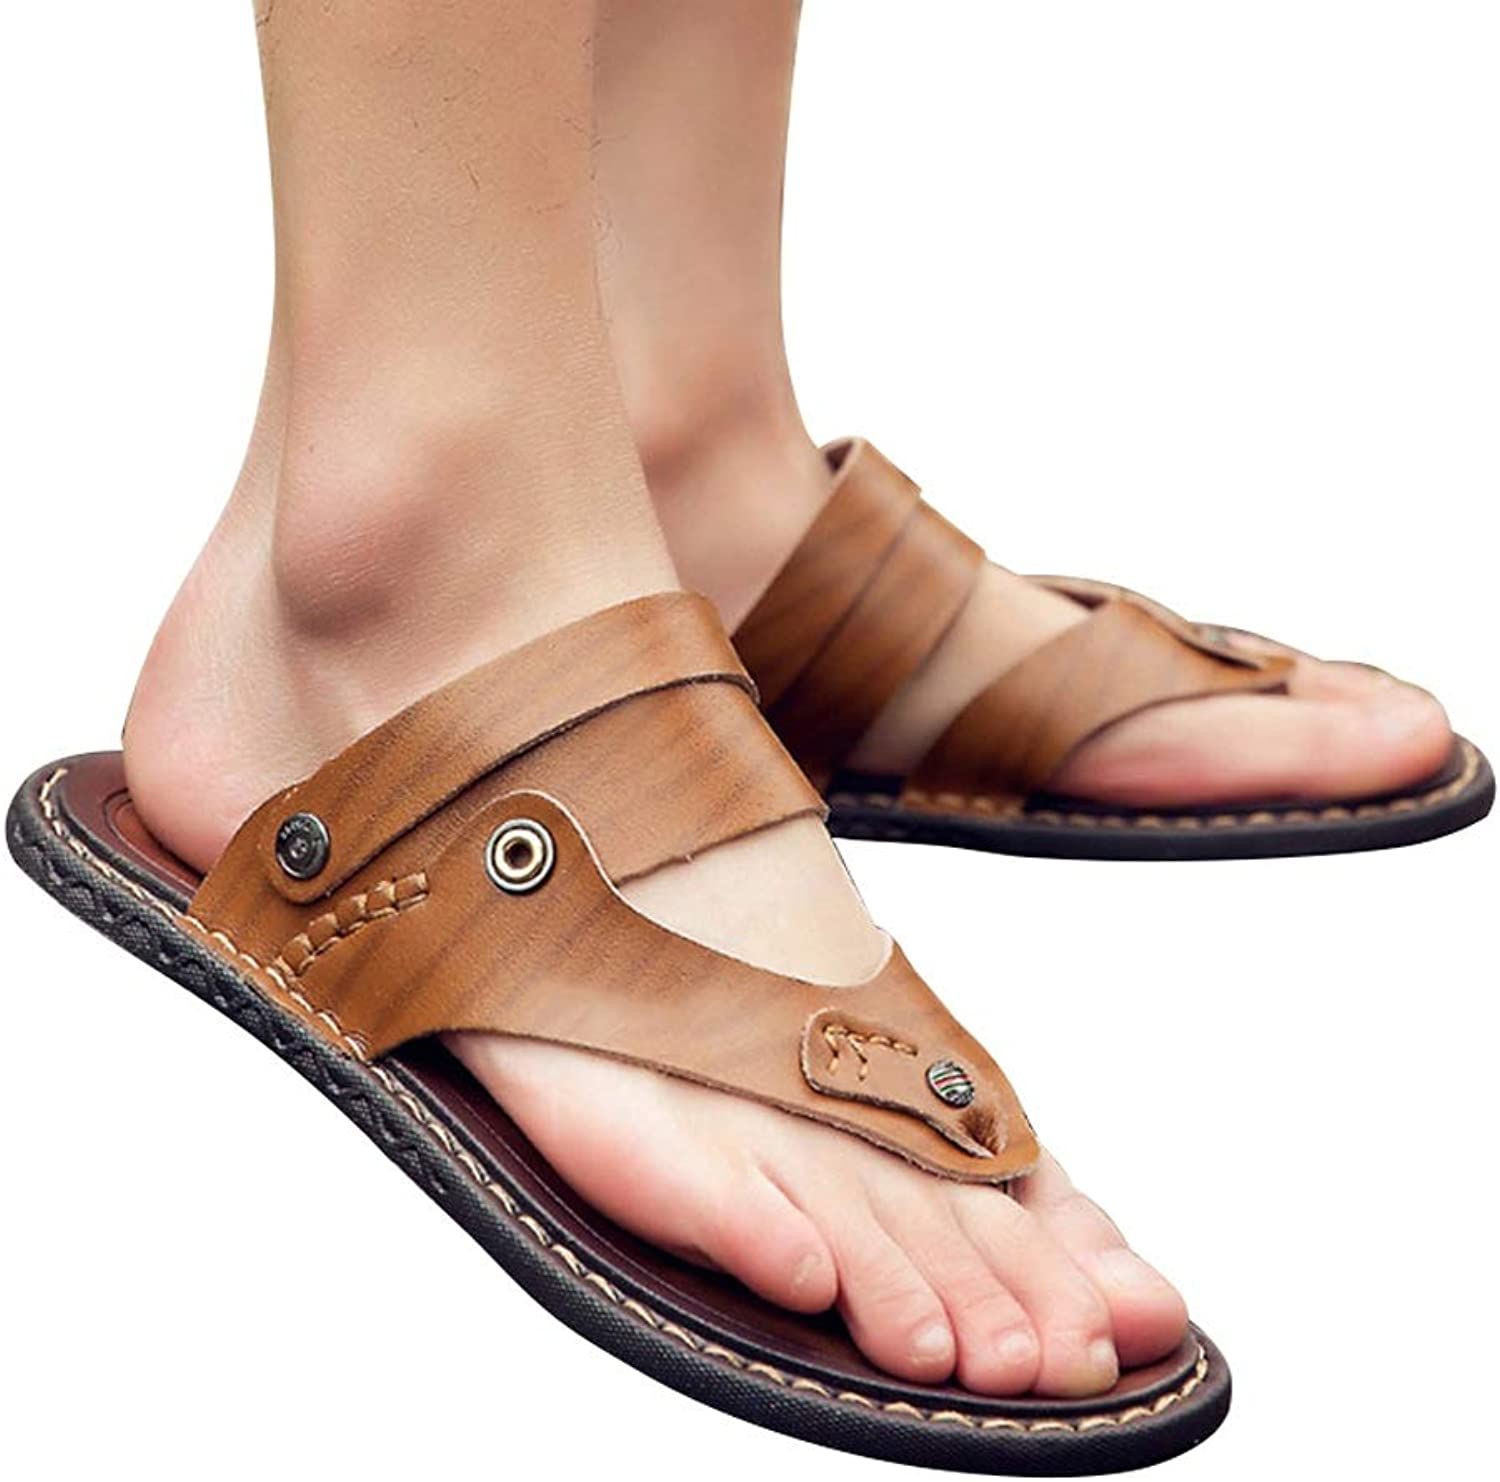 AUGAUST Men's Flip-flops Non-slip Wearable Soft and Comfortable Can Be Worn As Sandals (color   C, Size   38)